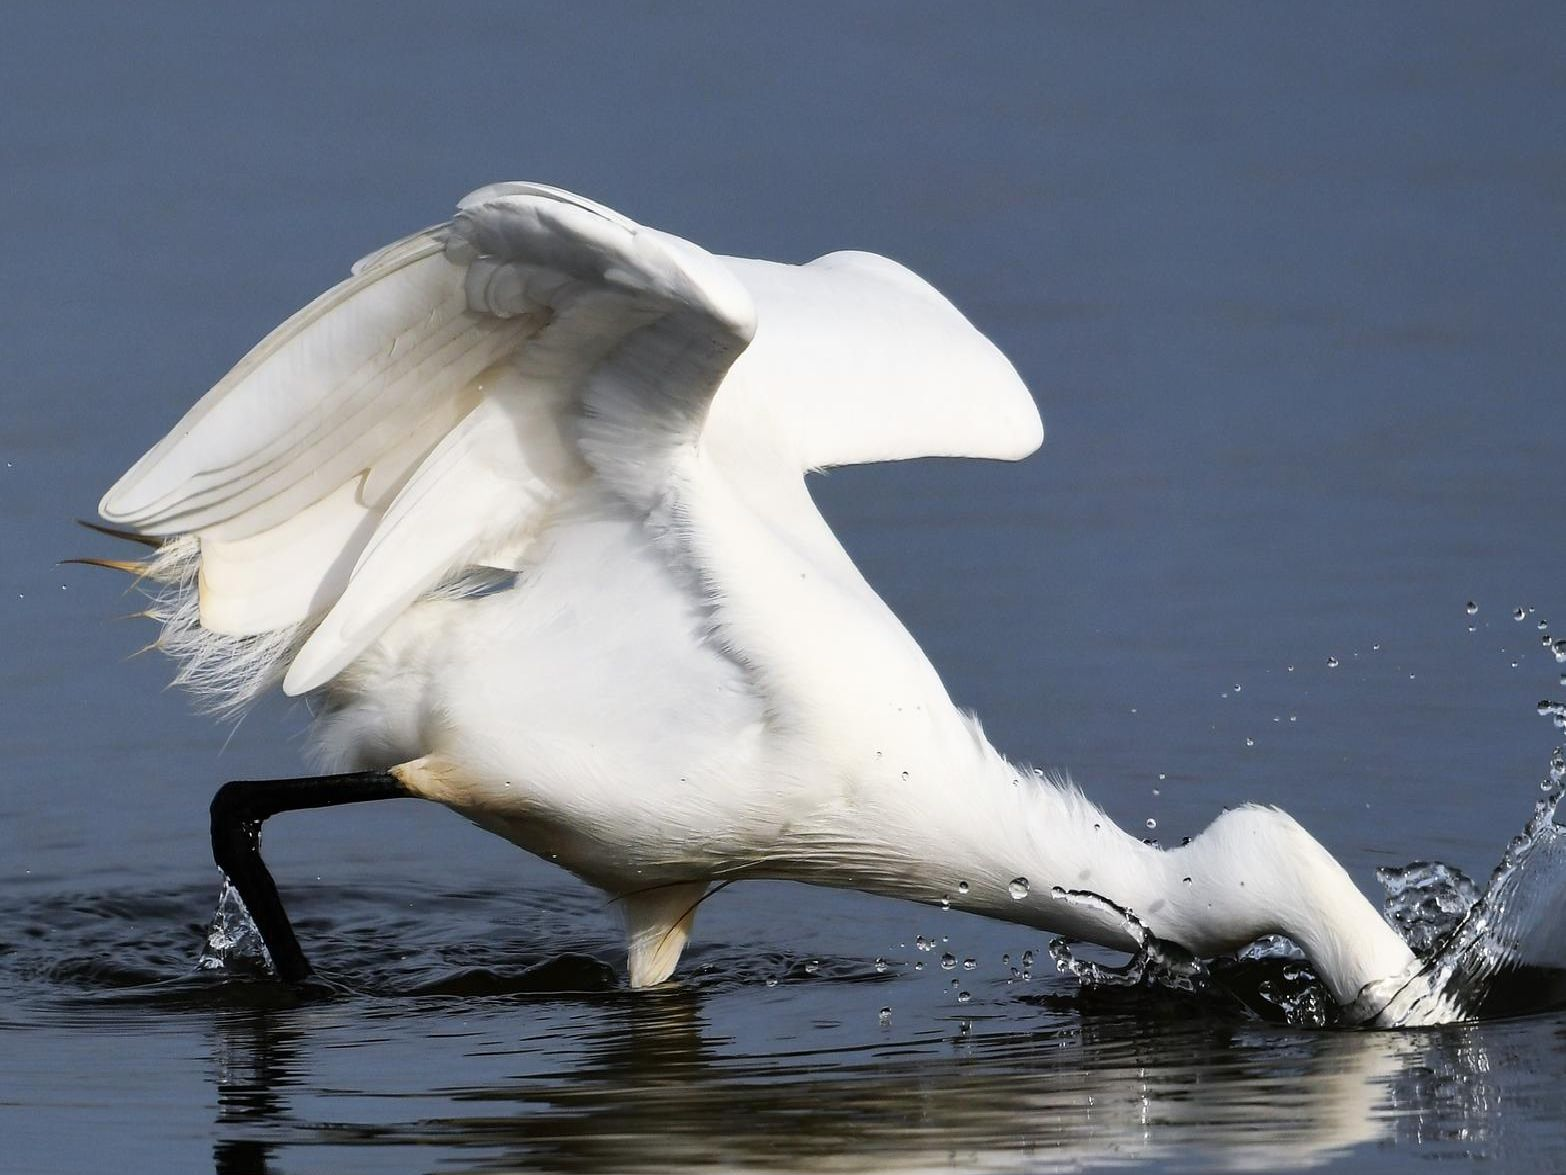 Allan Hickman captured this incredible shot of a little egret catching its lunch.